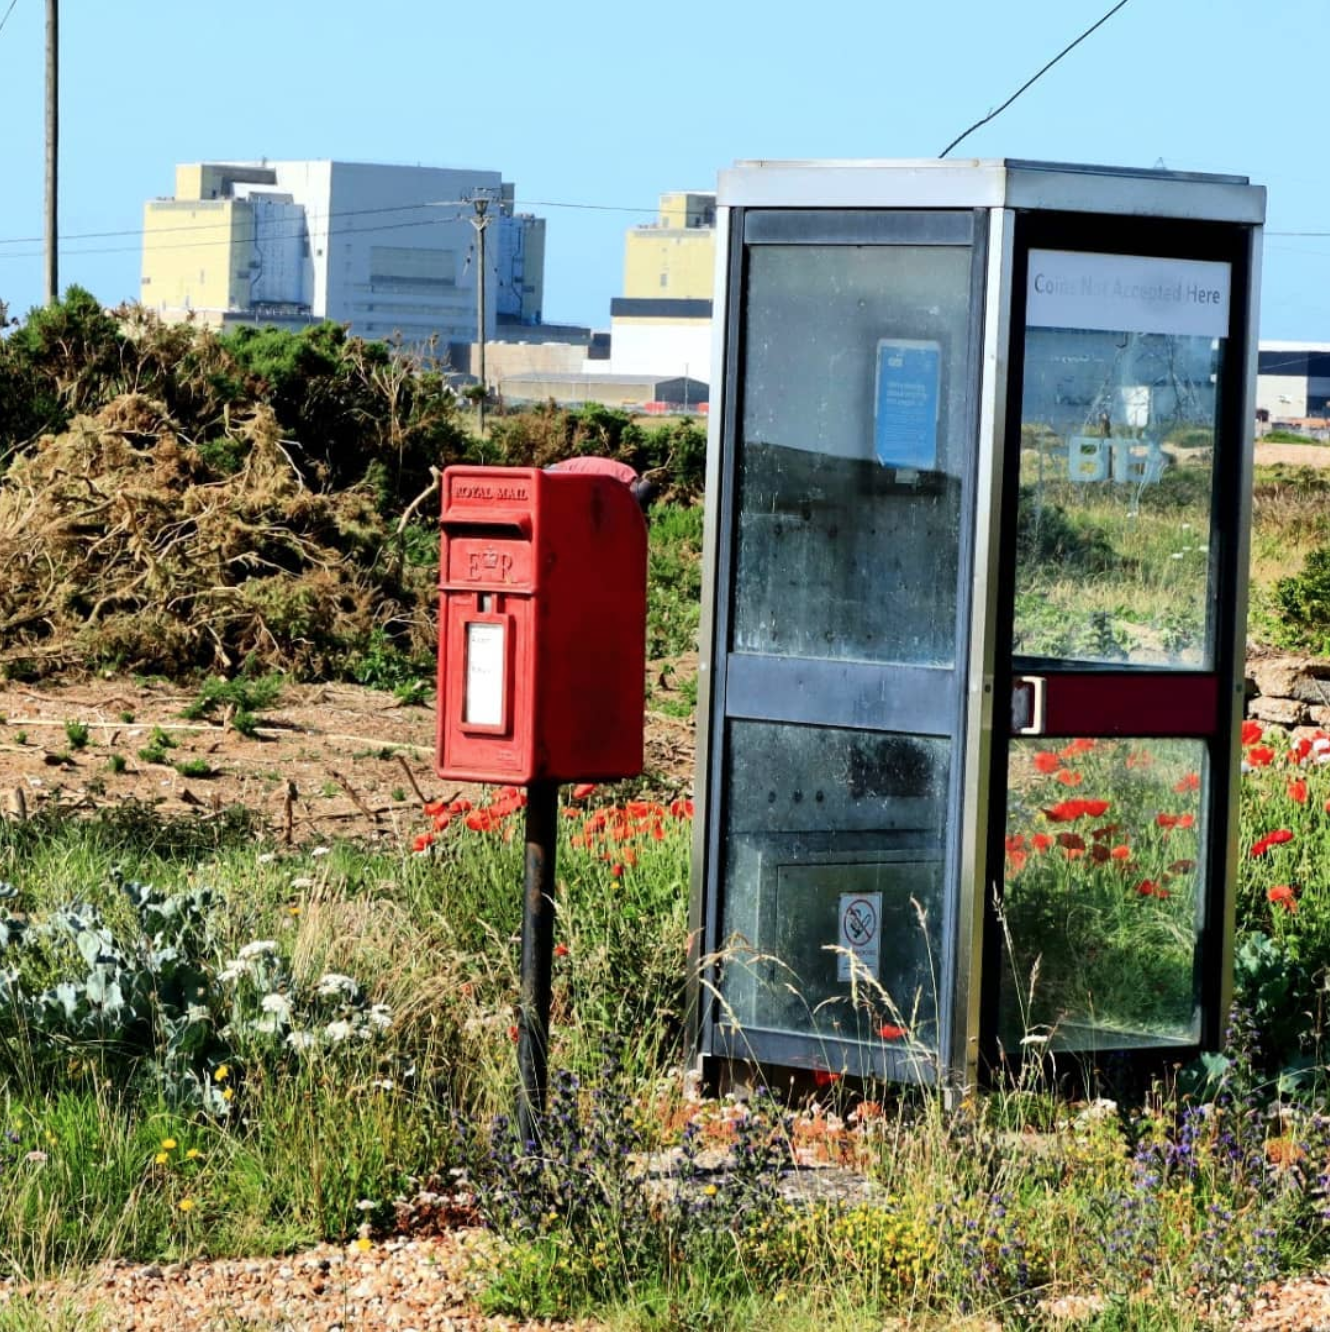 telephone booth and post box in a meadow of flowers